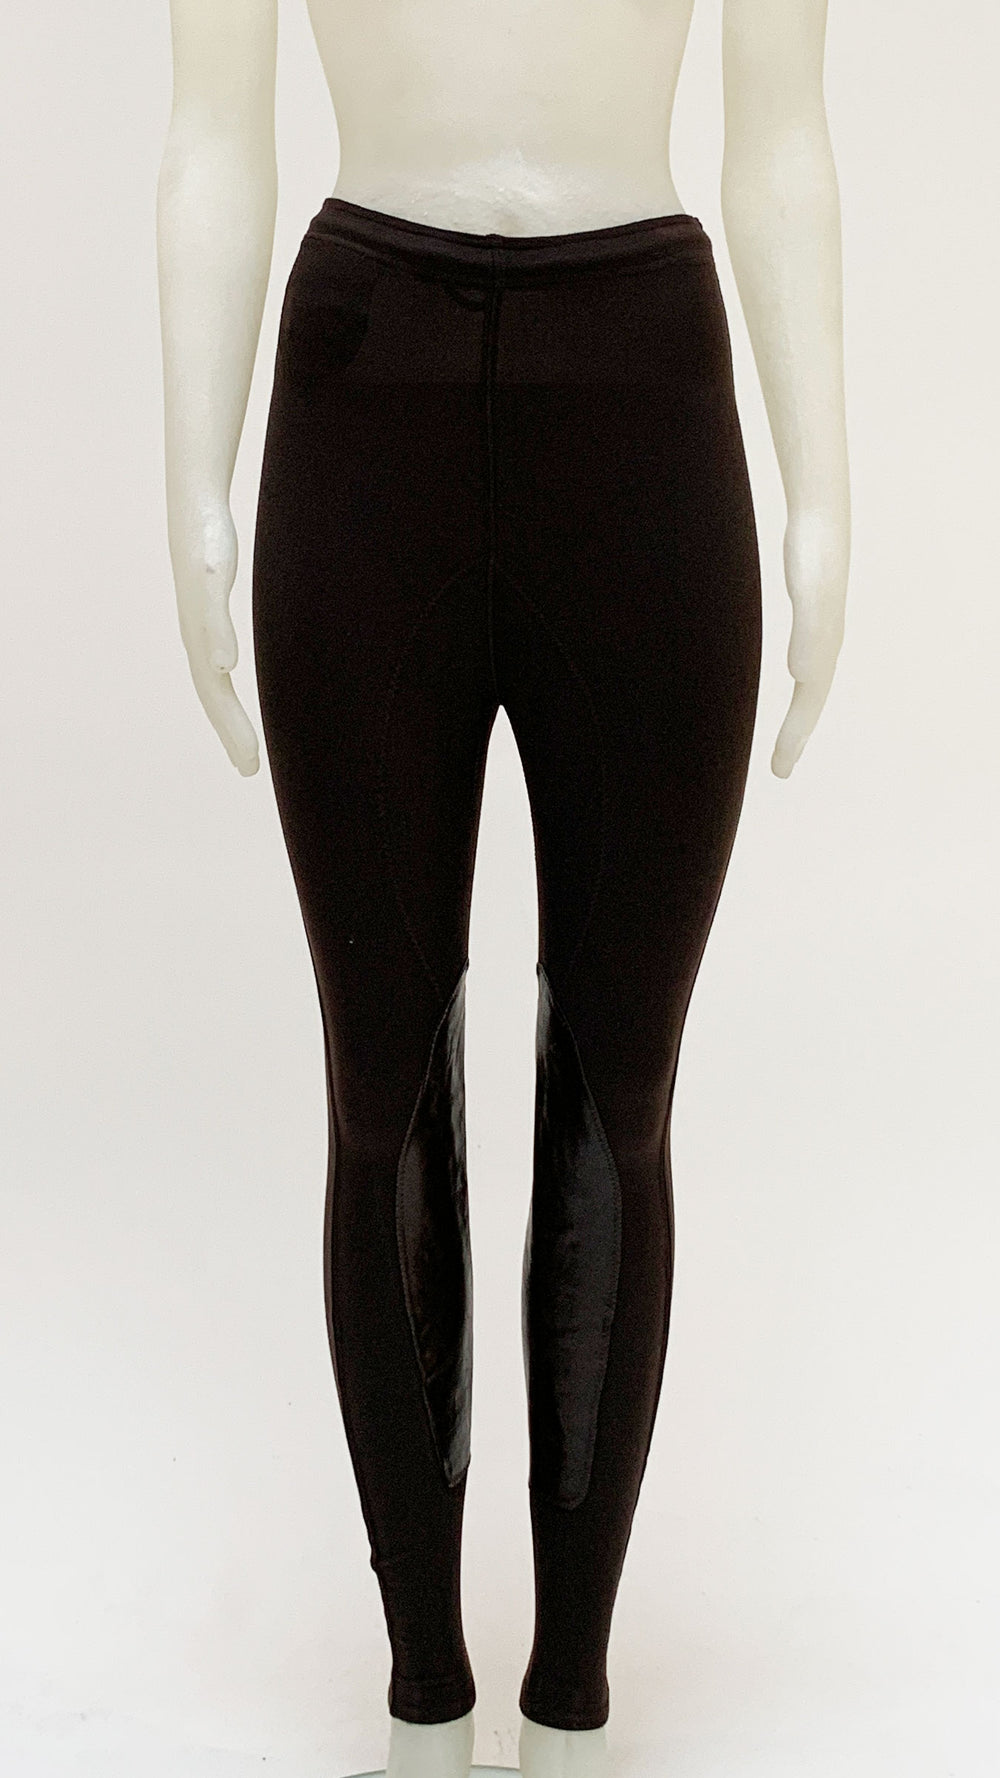 LEGGING WITH LEATHER INSERTS - 1